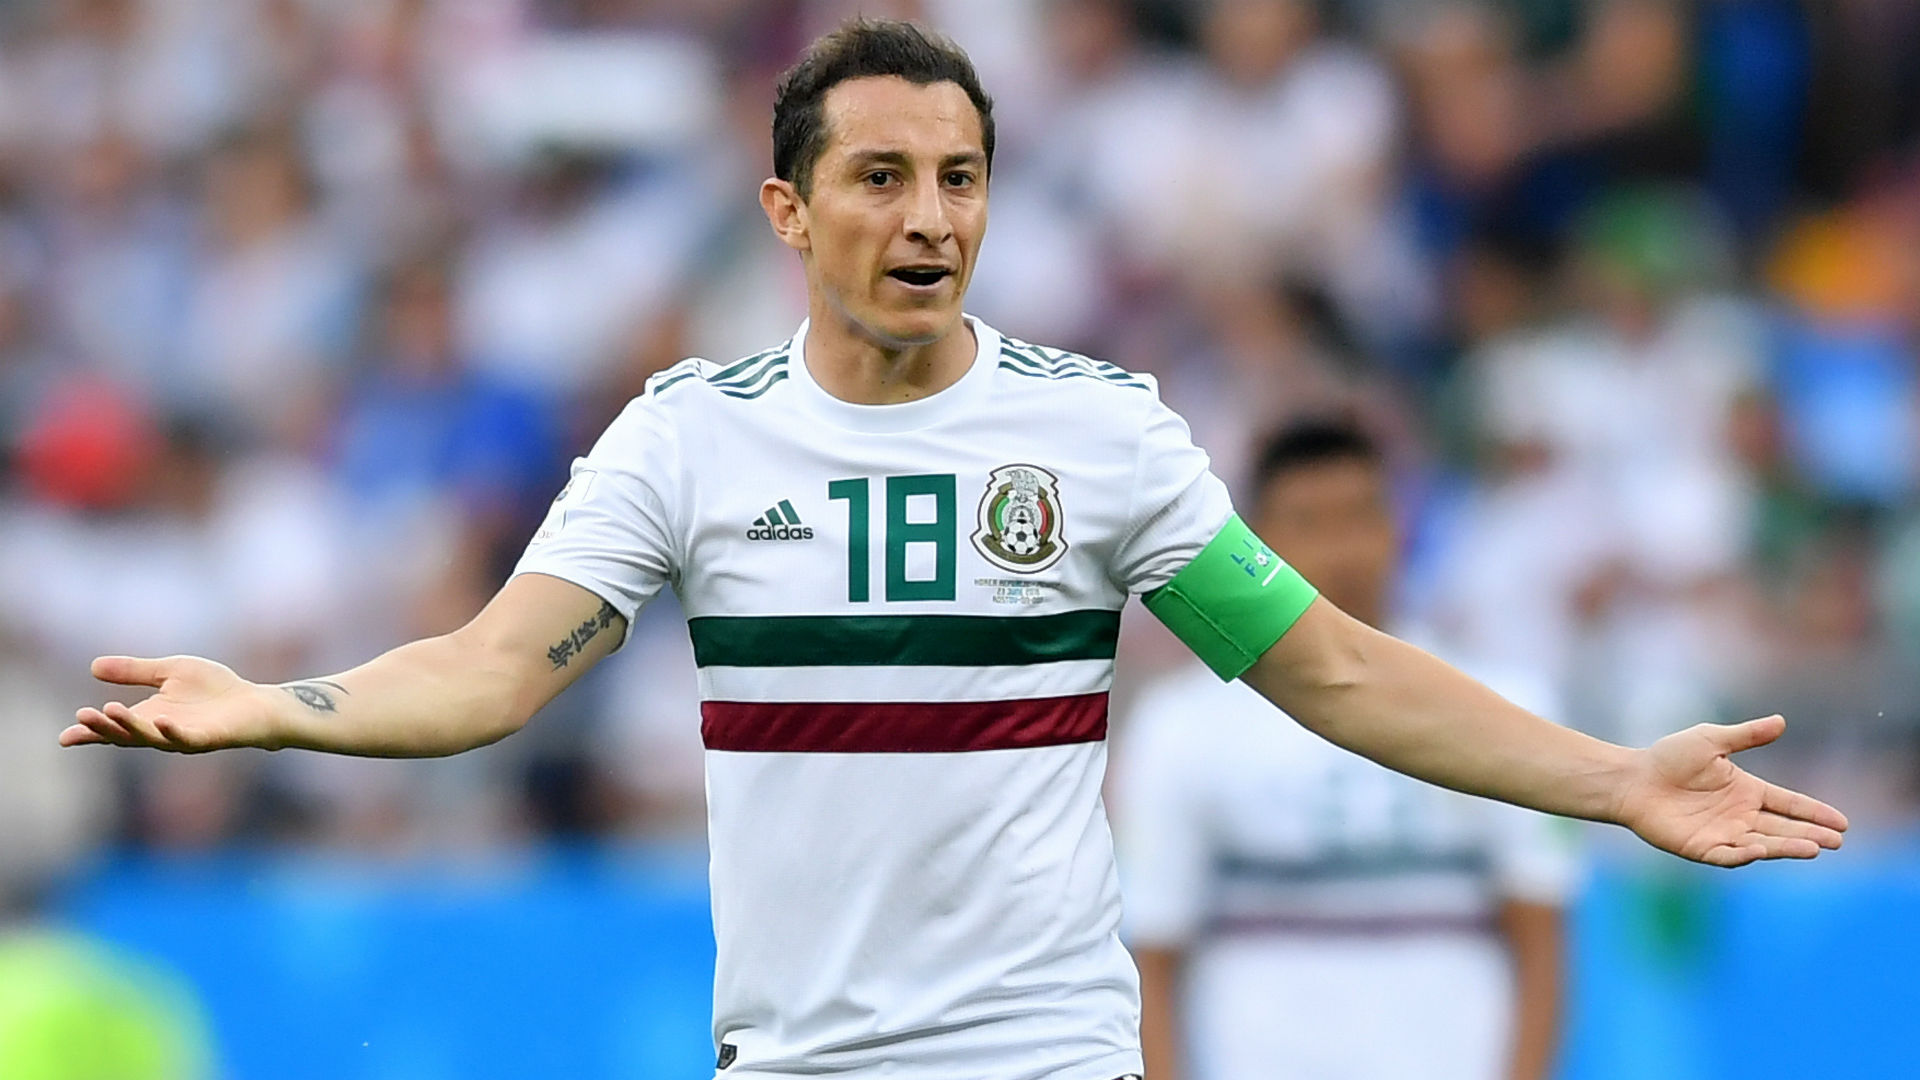 Historic World Cup exit would be harsh on Mexico